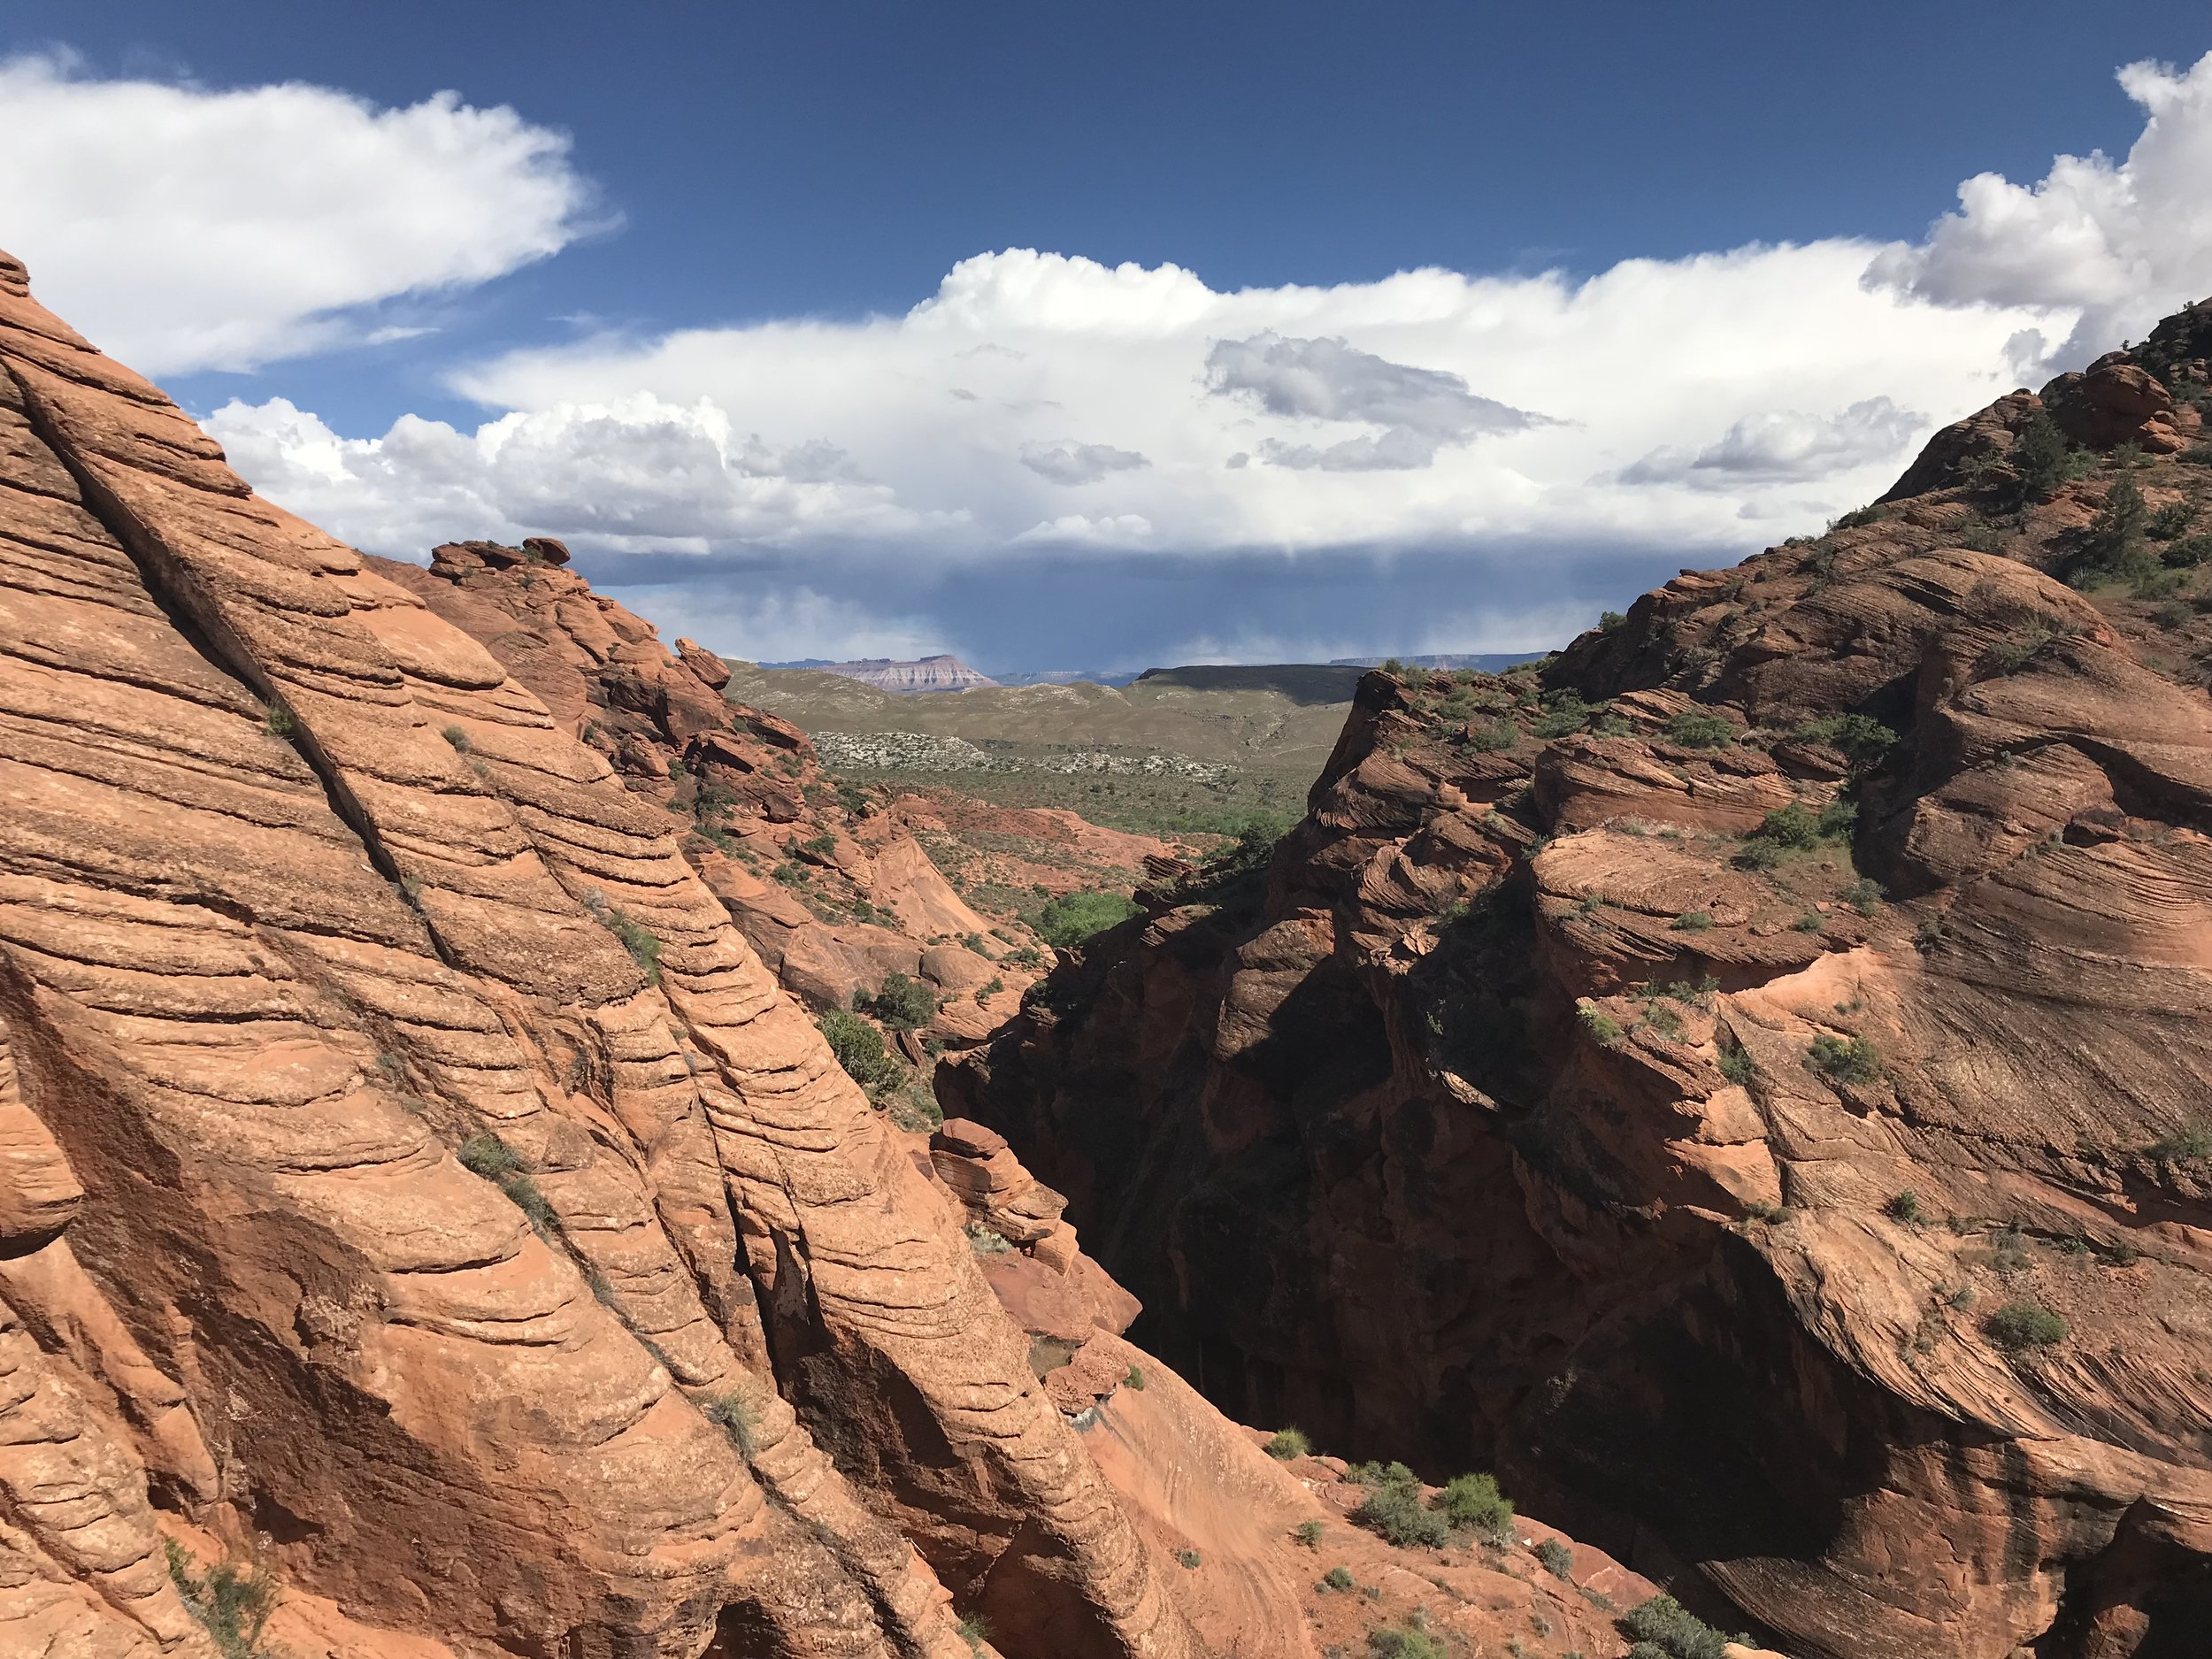 The view from a secret spot off Red Cliff Reef Trail in the Red Cliffs Desert Reserve.